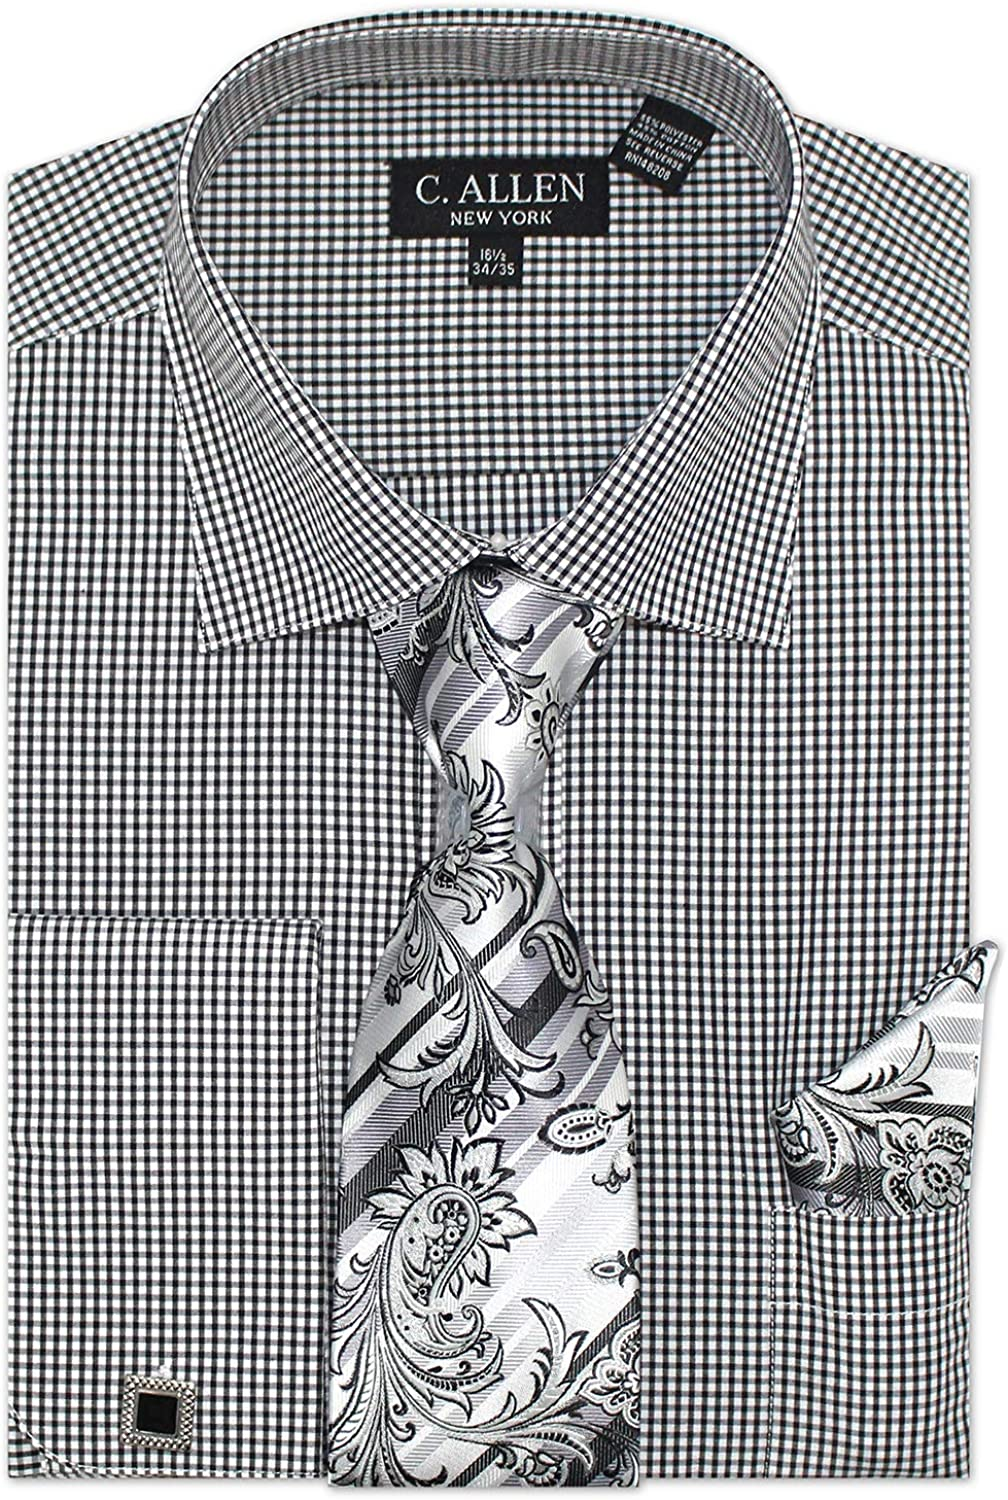 Men's Regular Fit Dress Shirts with Tie Hanky Cufflinks Set Combo French Cuffs Check Pattern